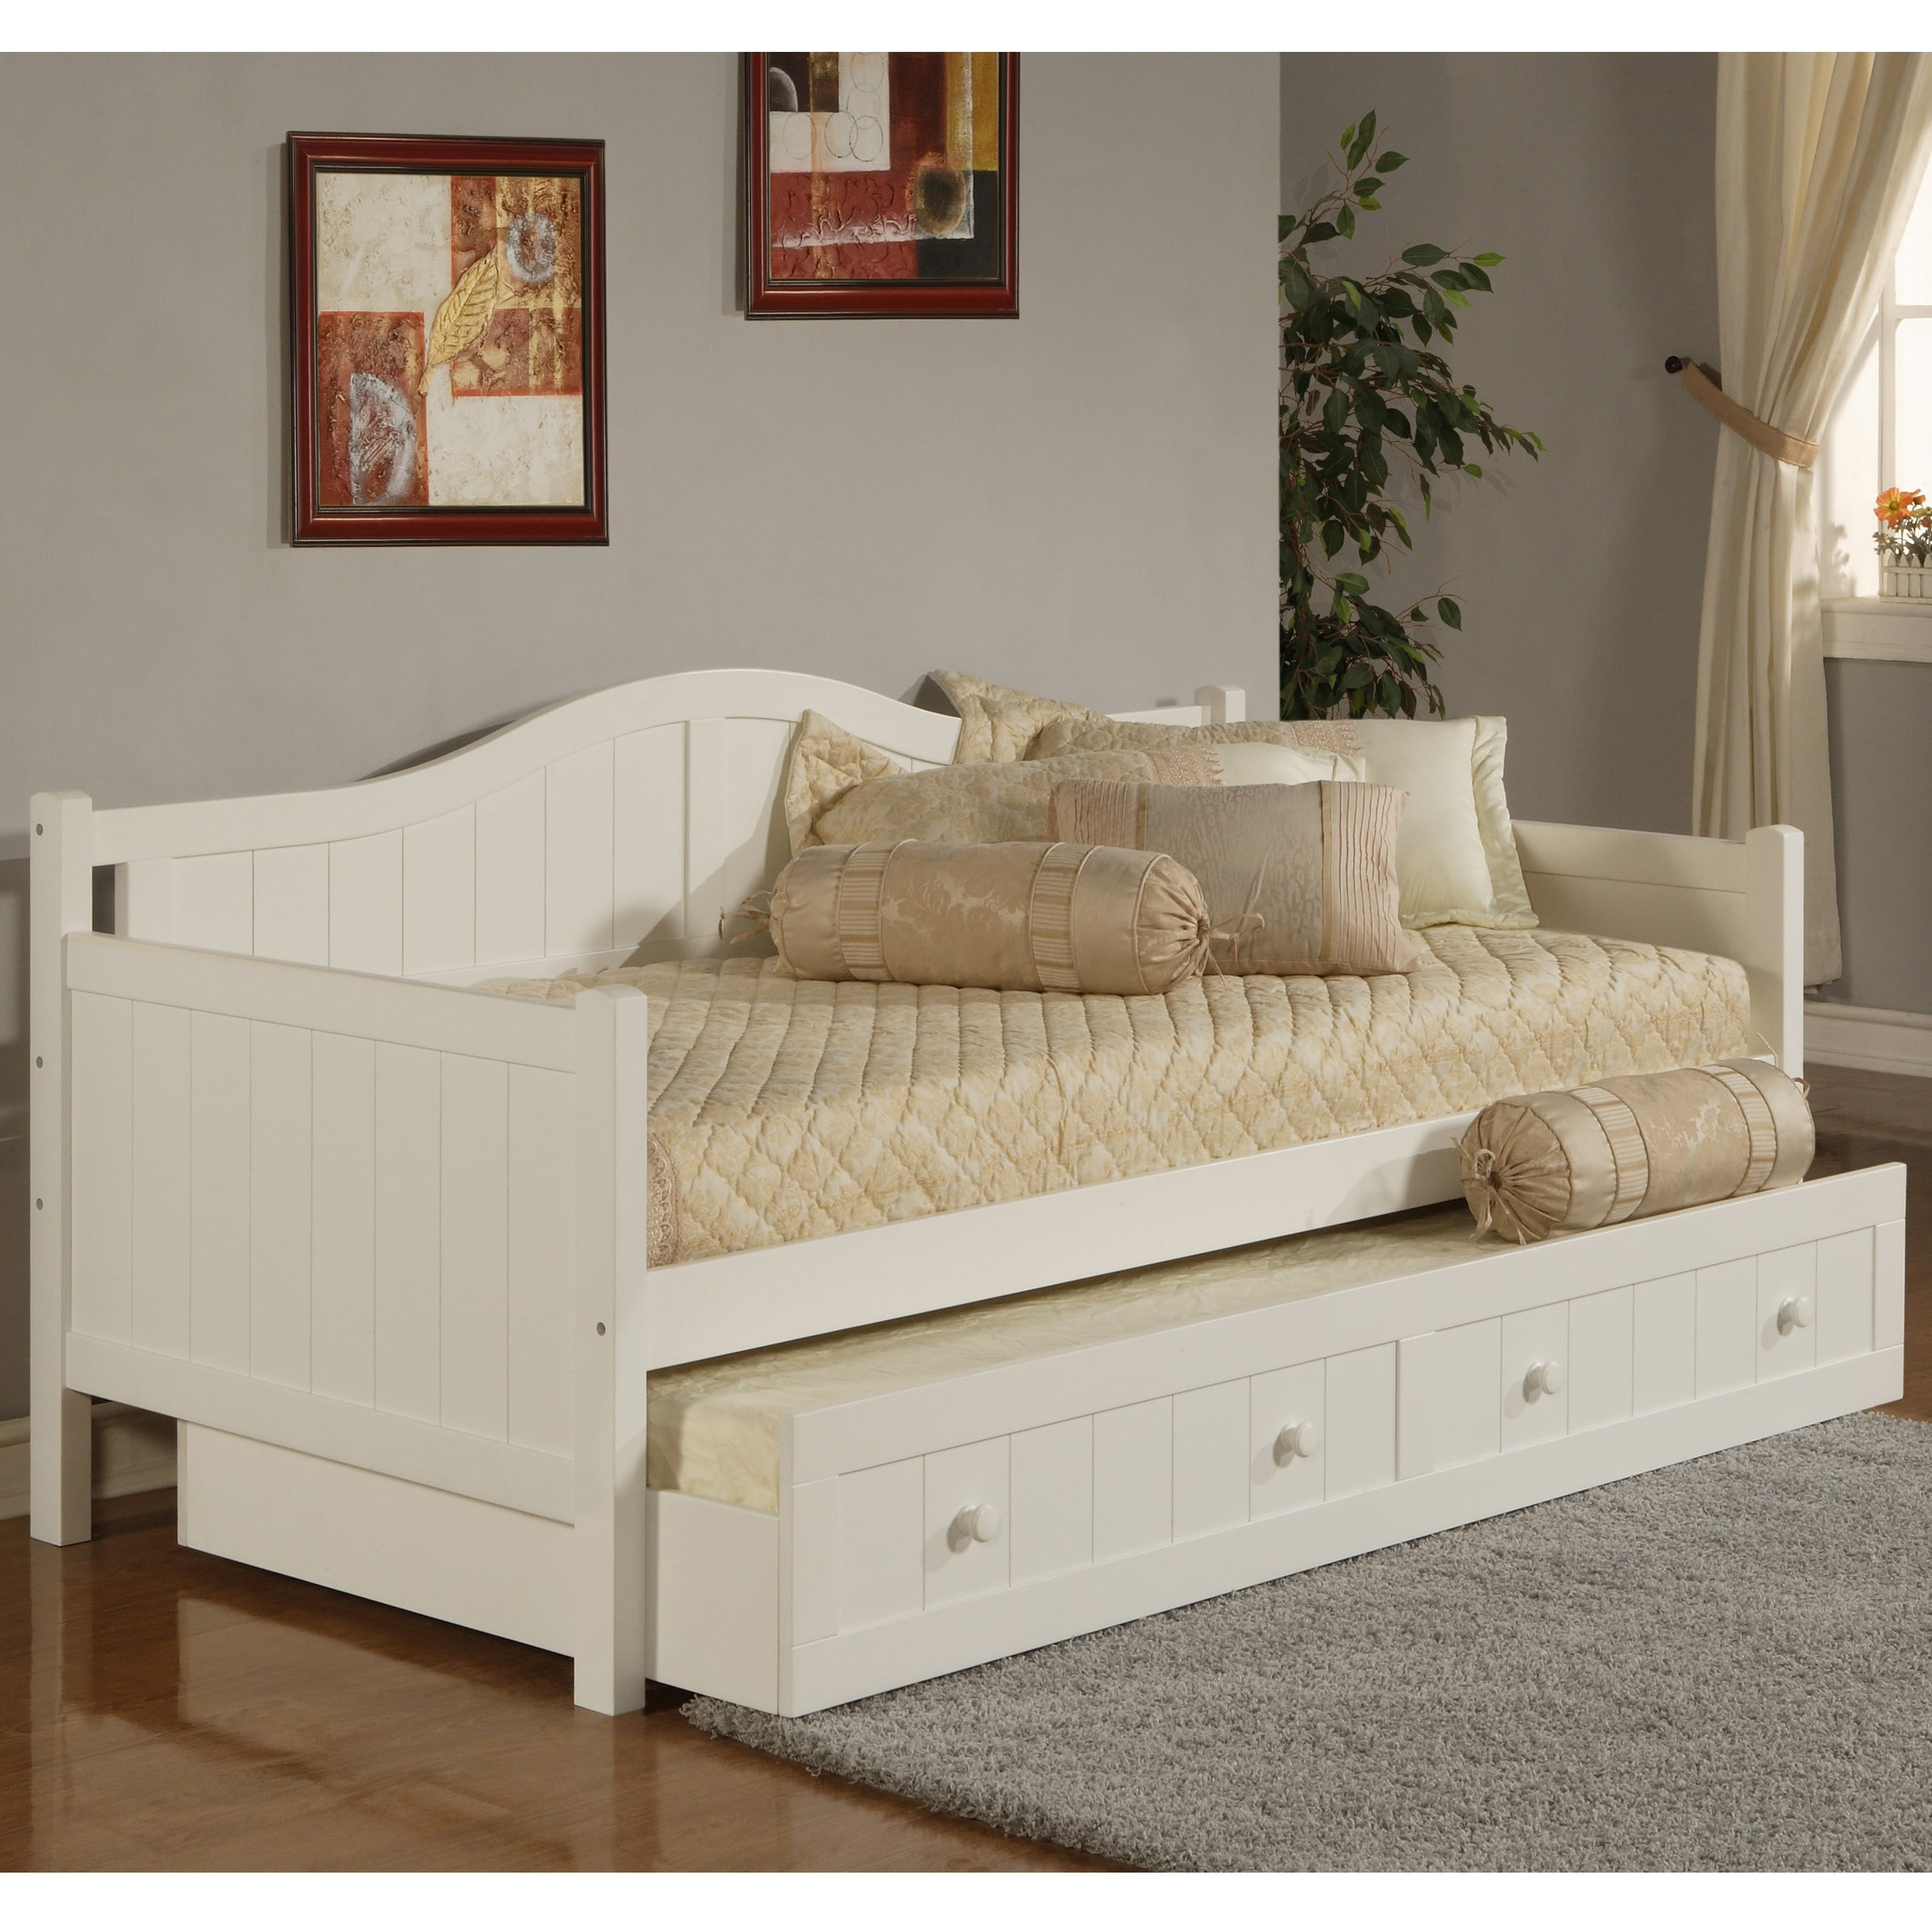 Shop Hillsdale Furniture Staci White Daybed Free Shipping Today